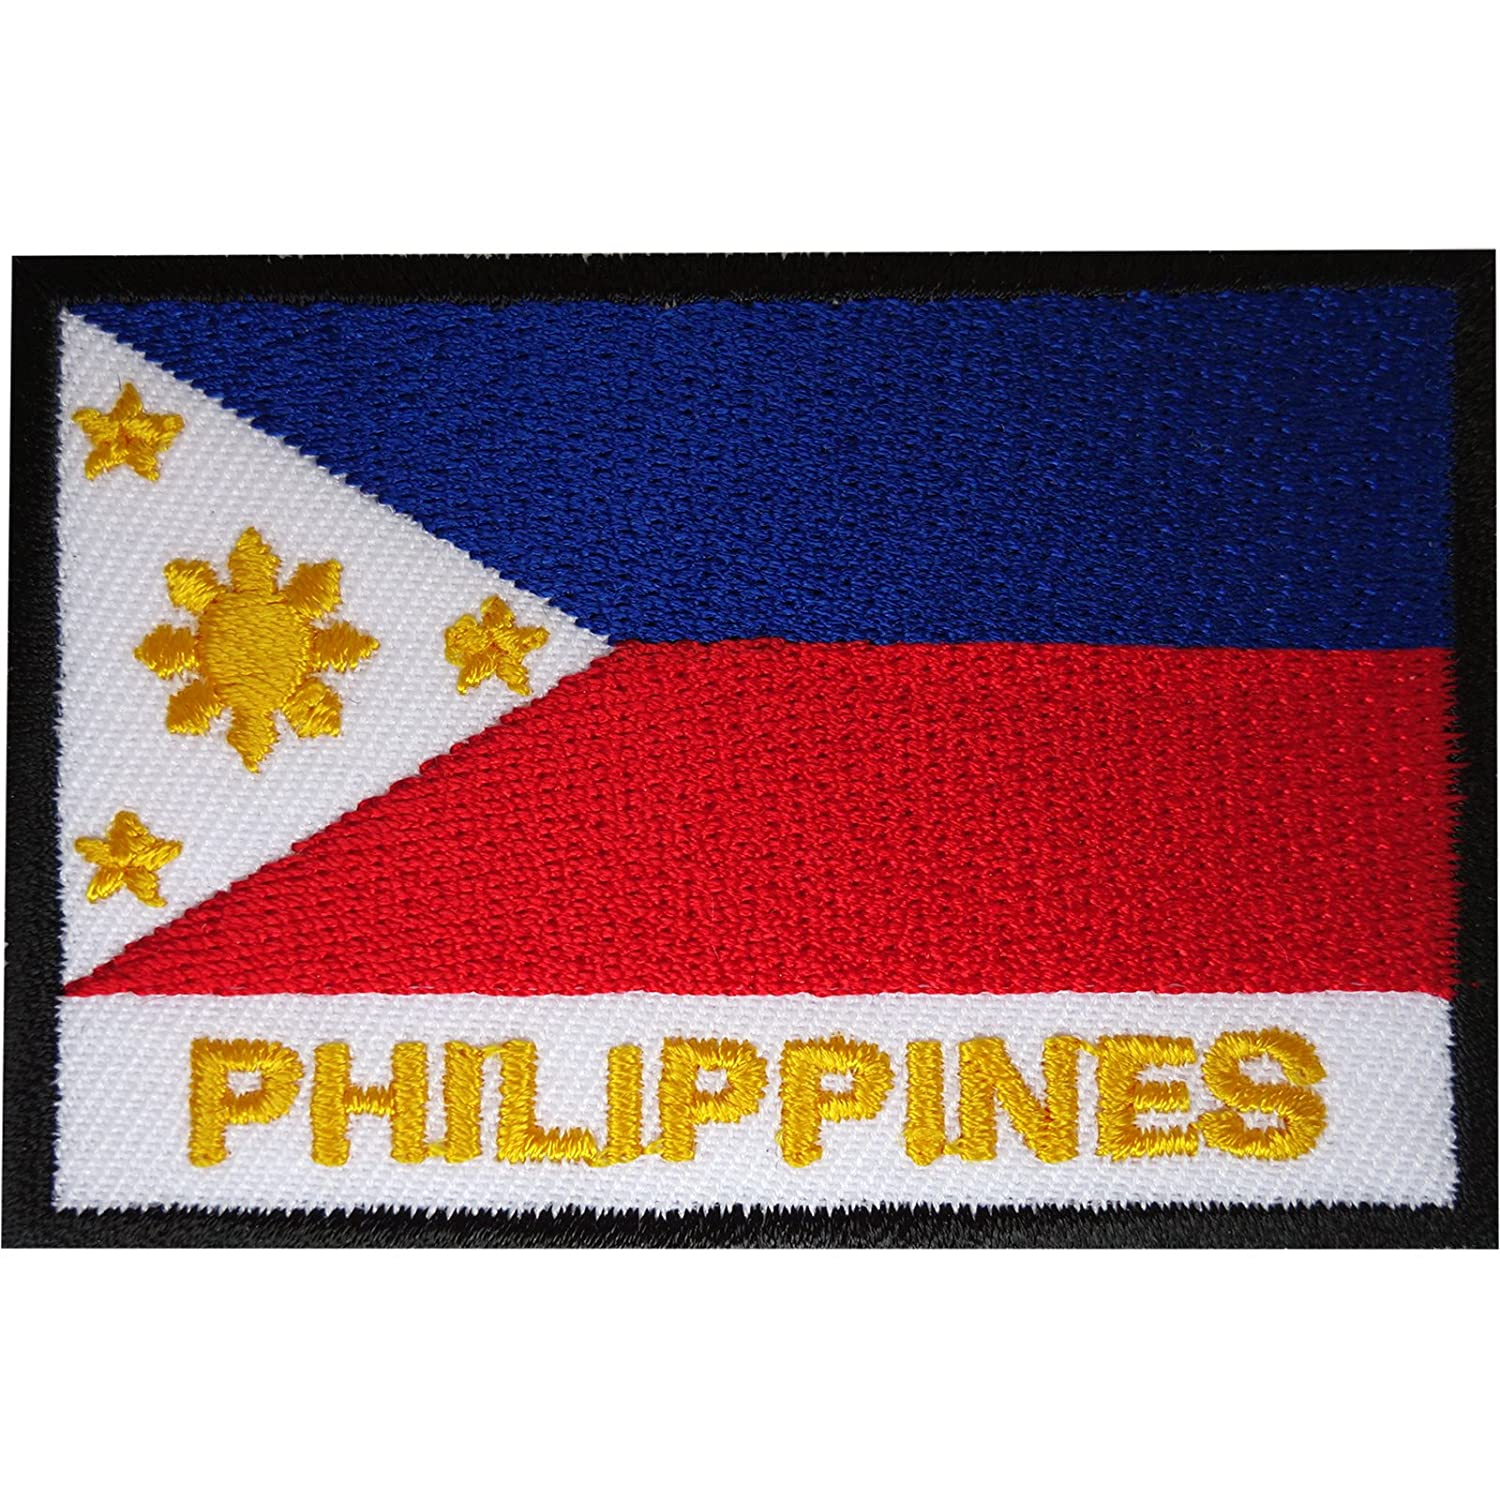 Philippines Flag Patch Embroidered Iron Sew On Clothes Filipino Badge Applique ELLU